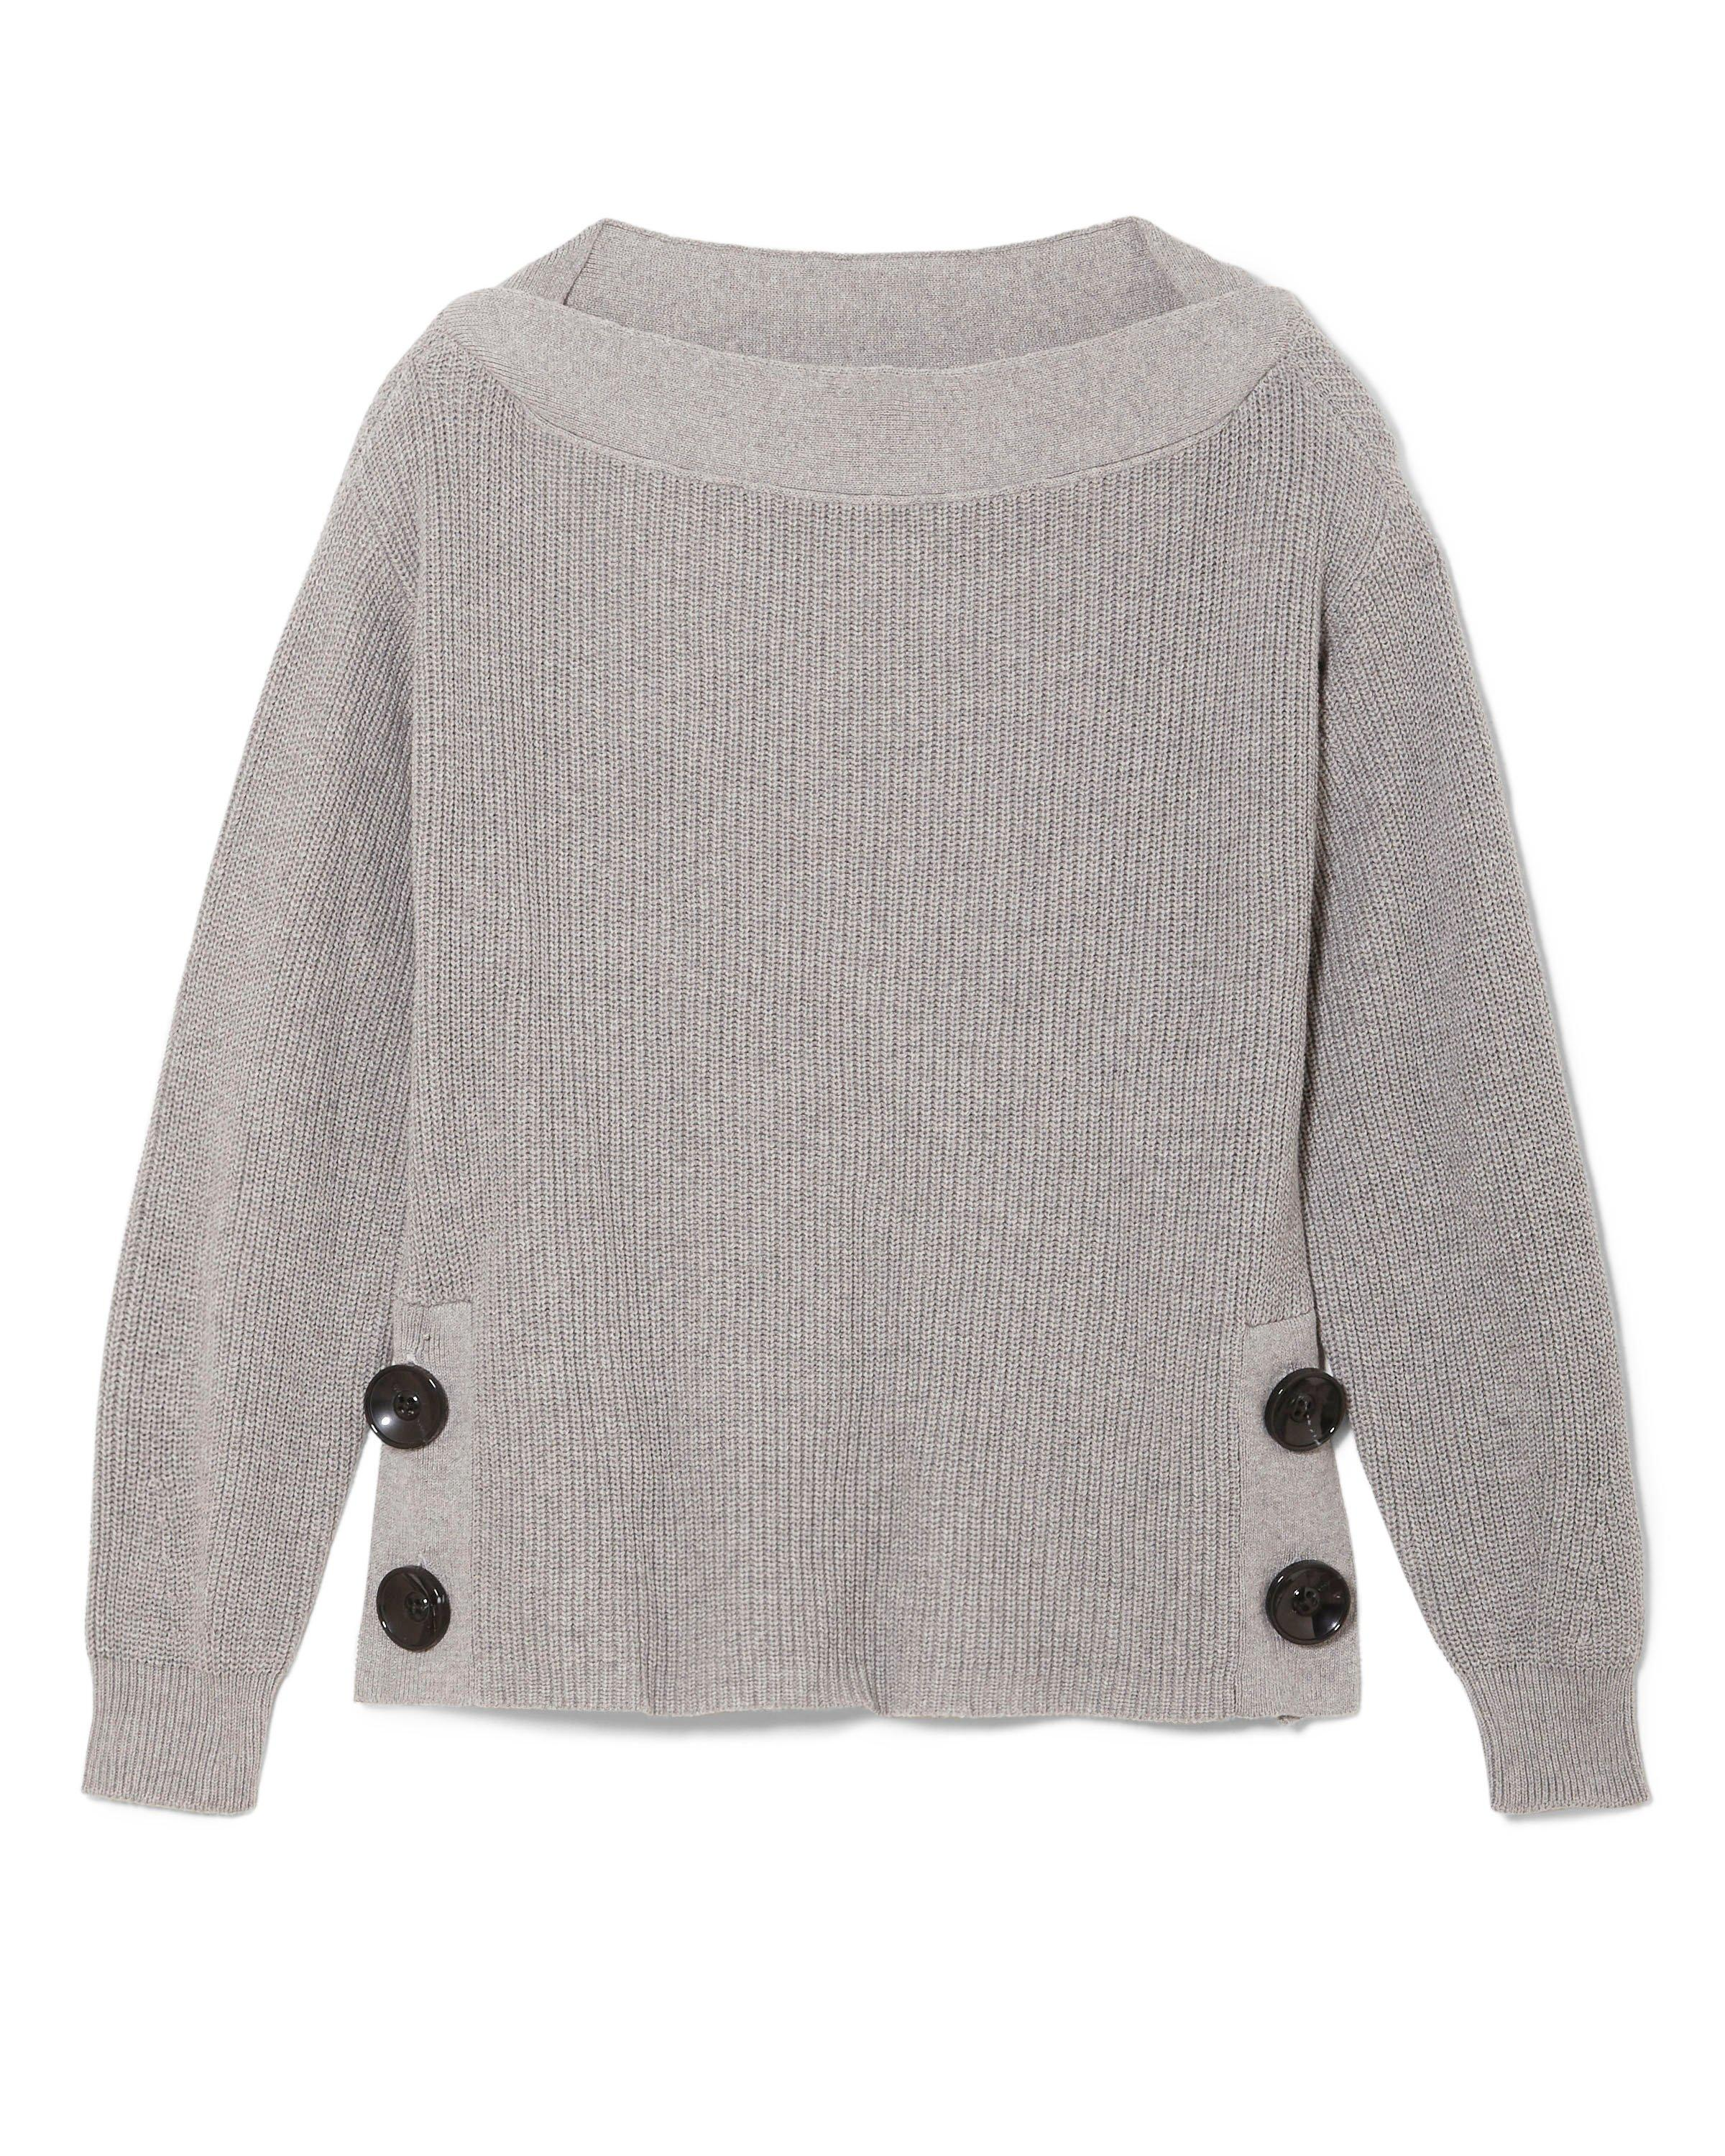 8b251db449e2 Lyst - Vince Camuto Boat Neck Button-detail Sweater in Gray